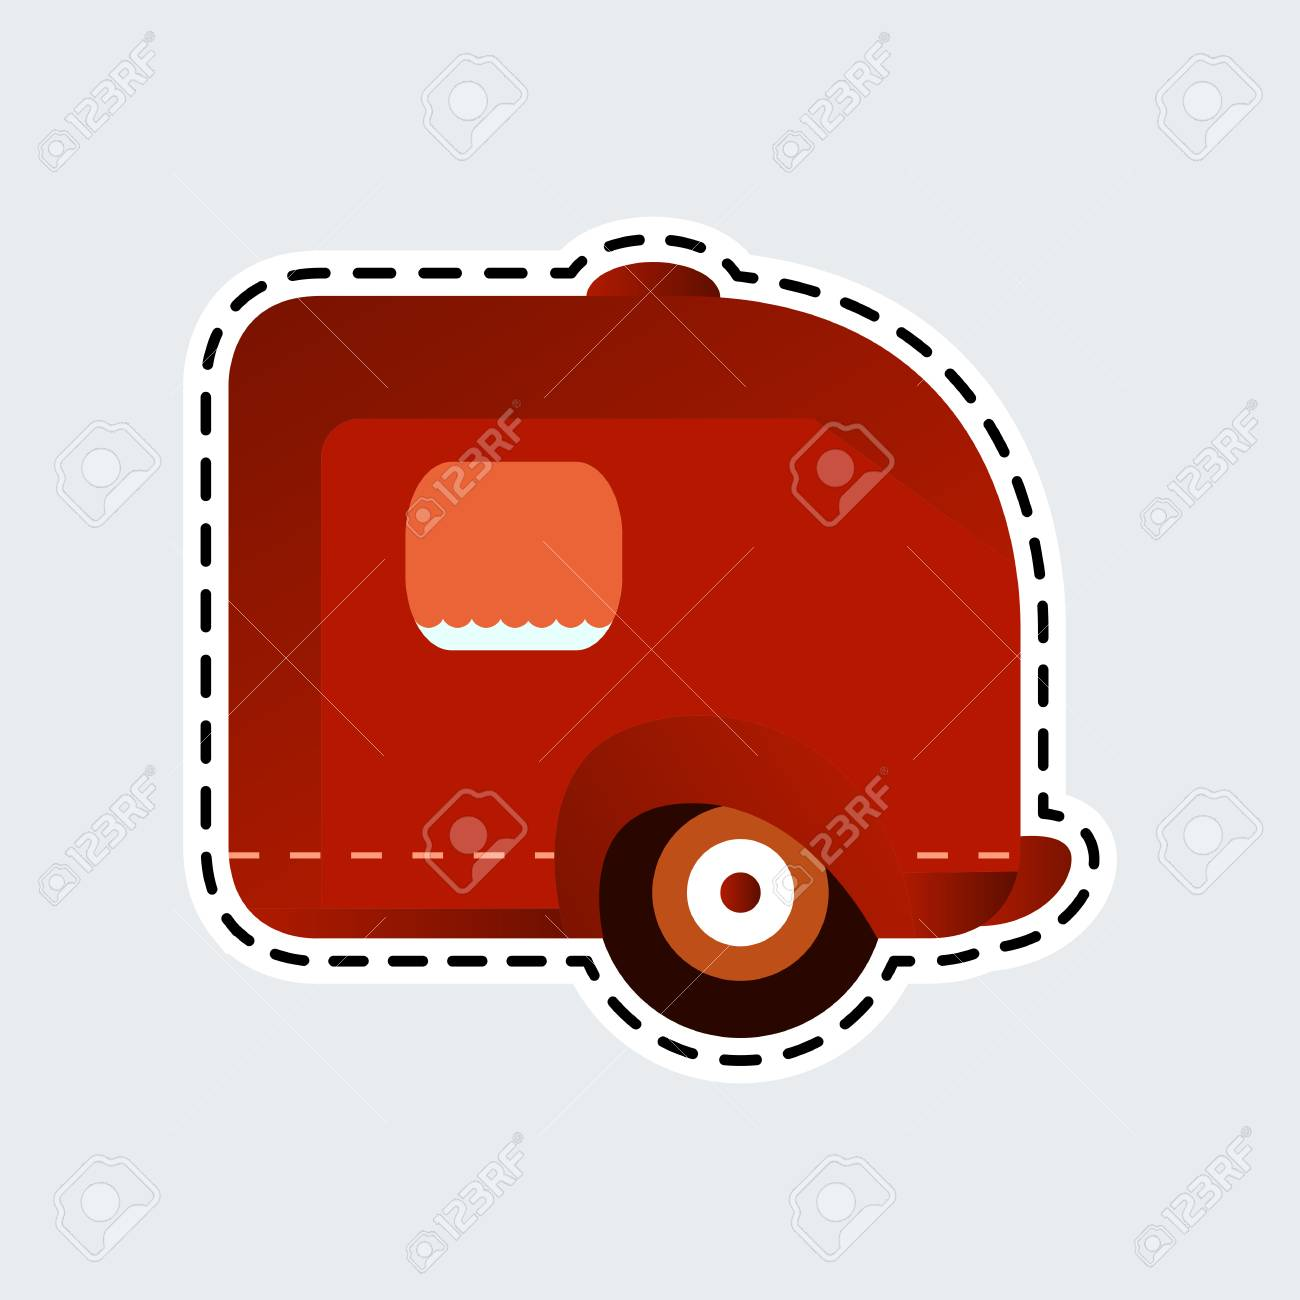 Vintage Camping Trailer In Patch Style Clip Art For Sticker